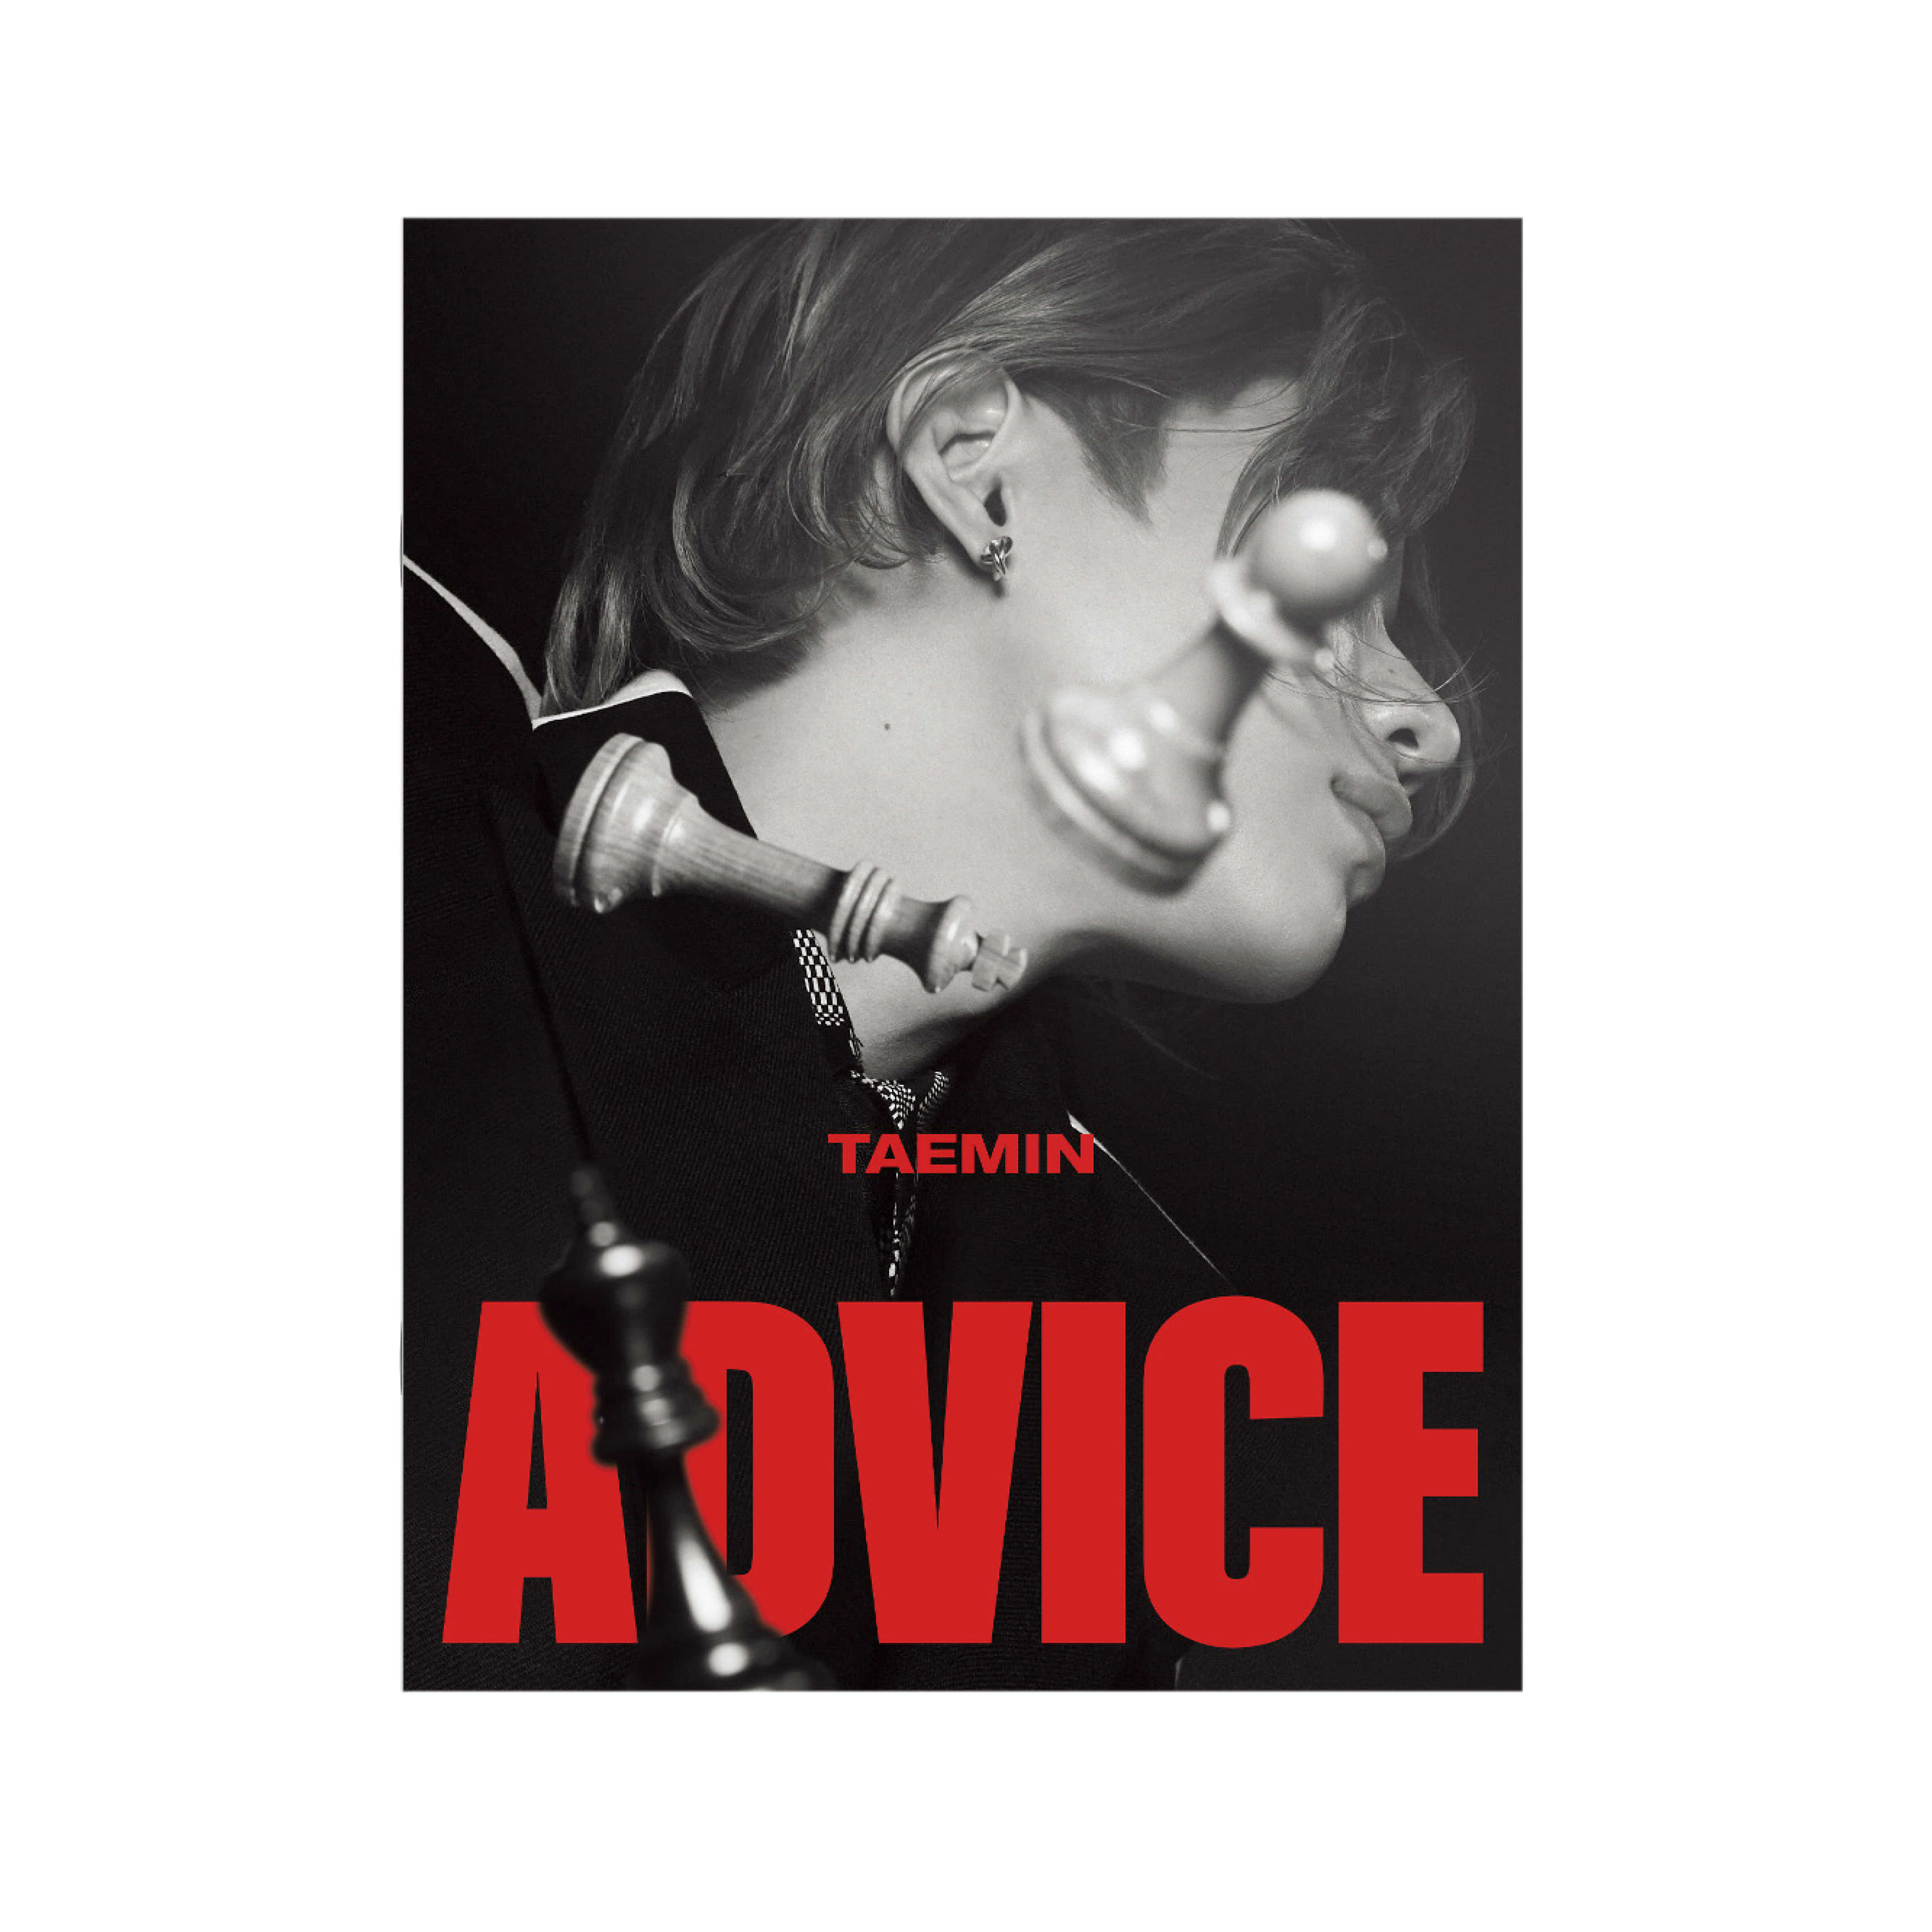 태민(TAEMIN) - 3rd Mini Album [Advice]케이팝스토어(kpop store)